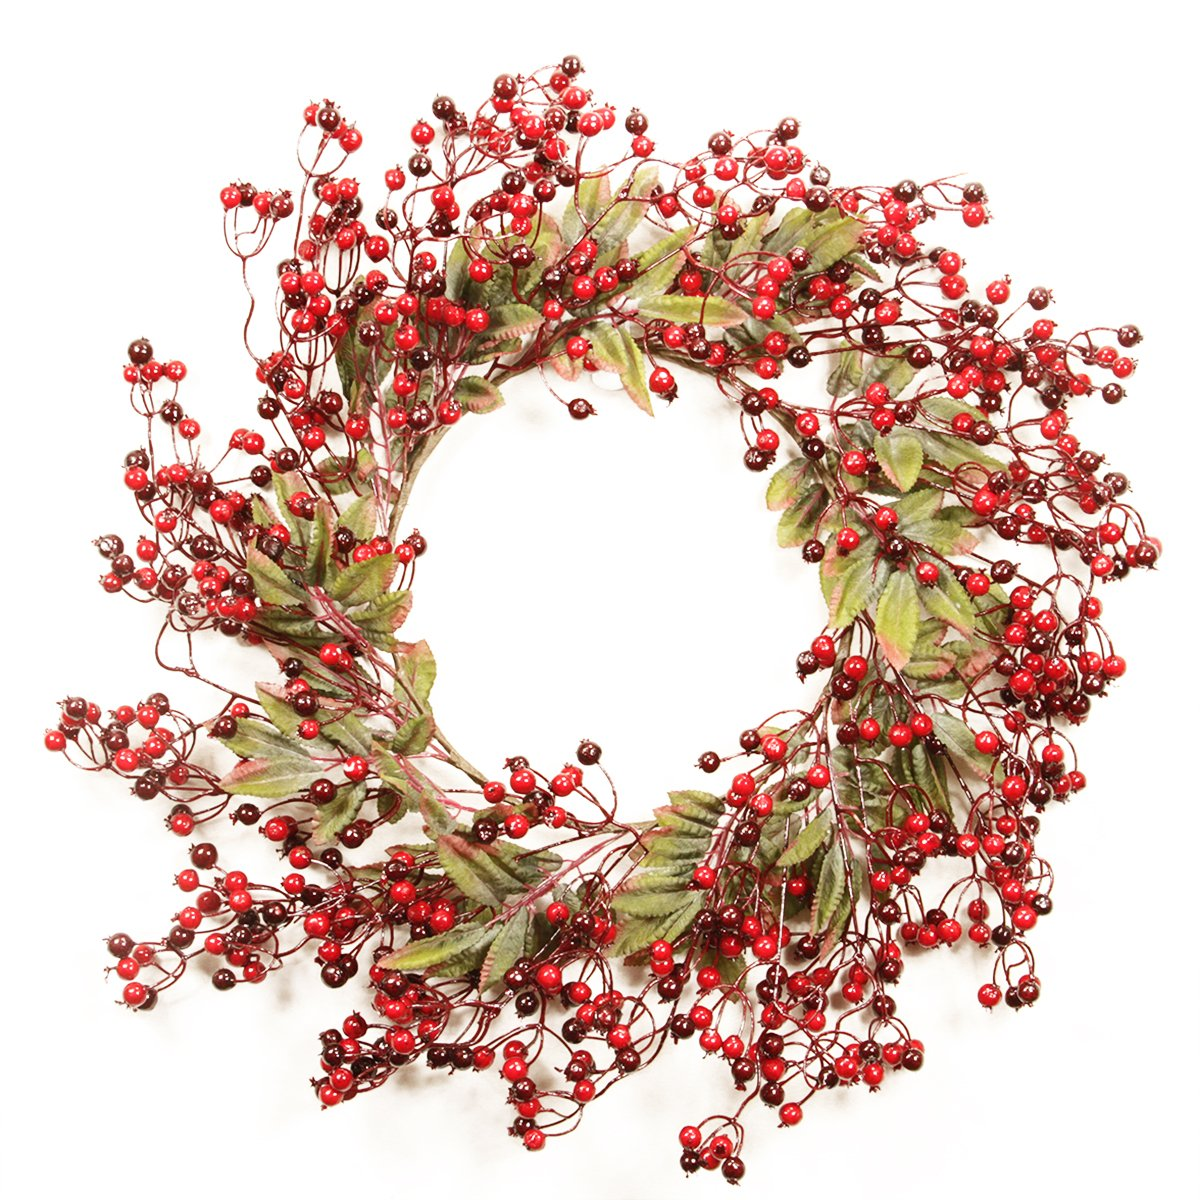 20 Festive Red Berry and Holly Leaves Artificial Christmas Wreath